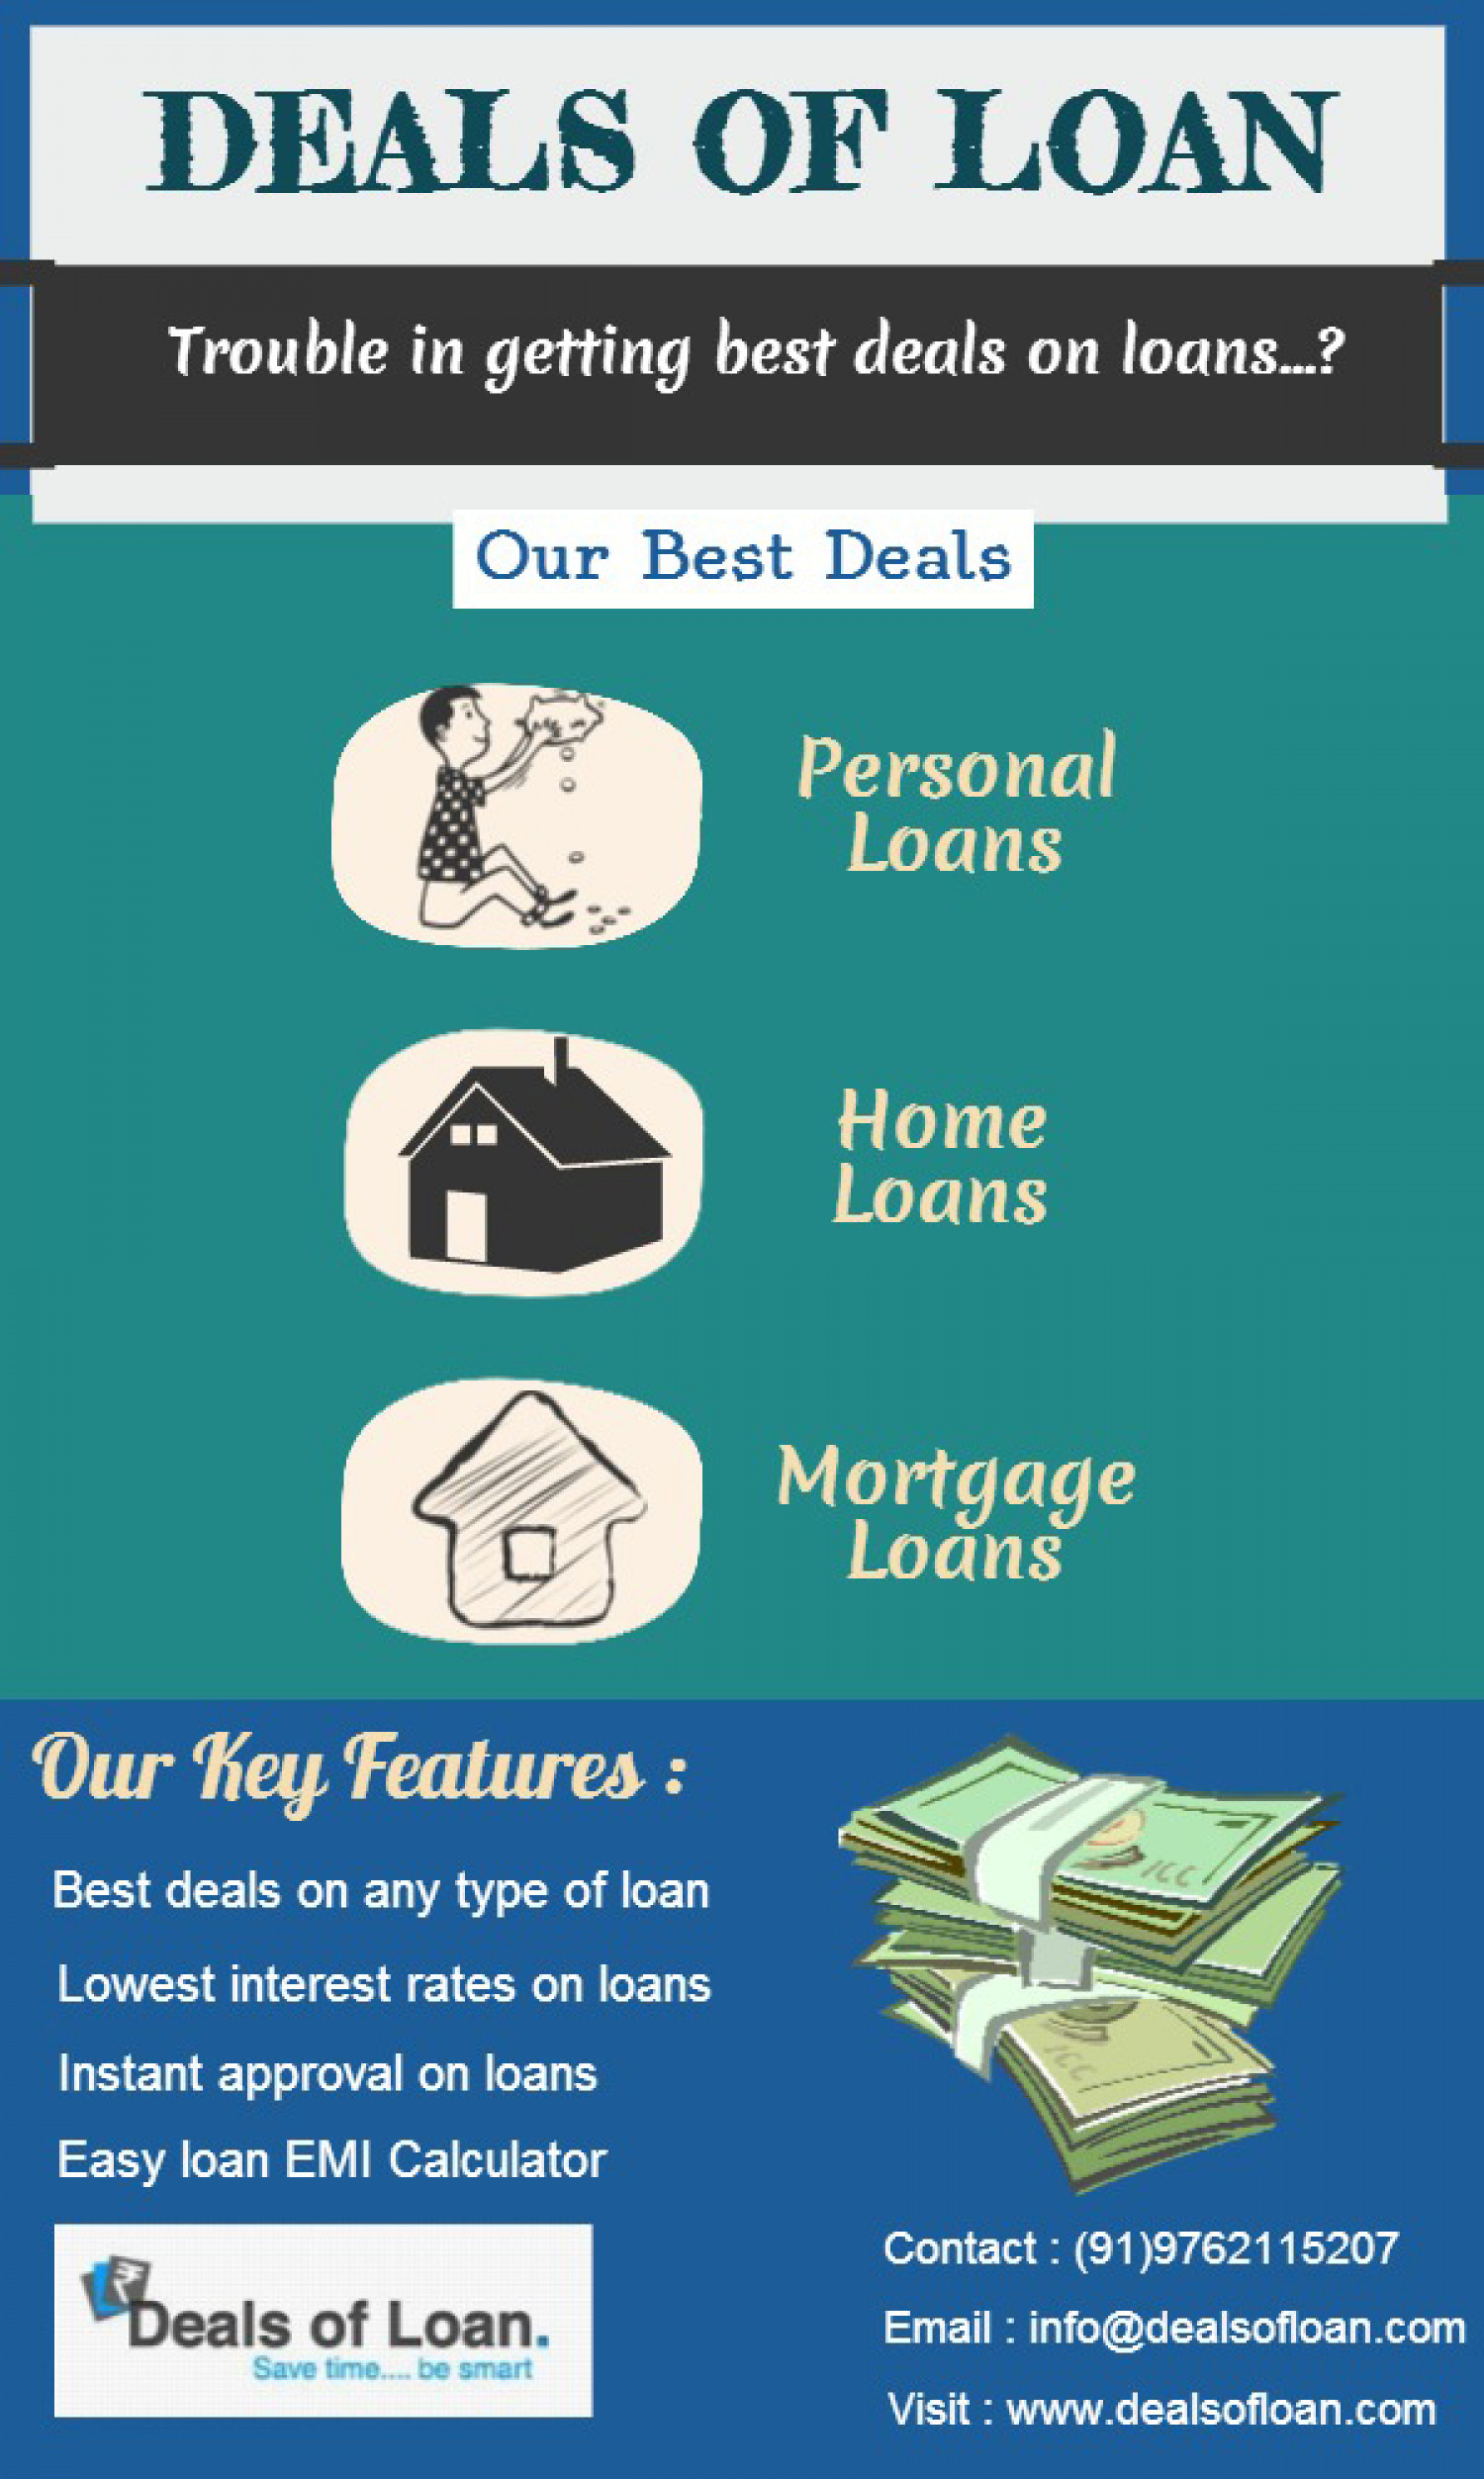 Deals of Loan Infographic